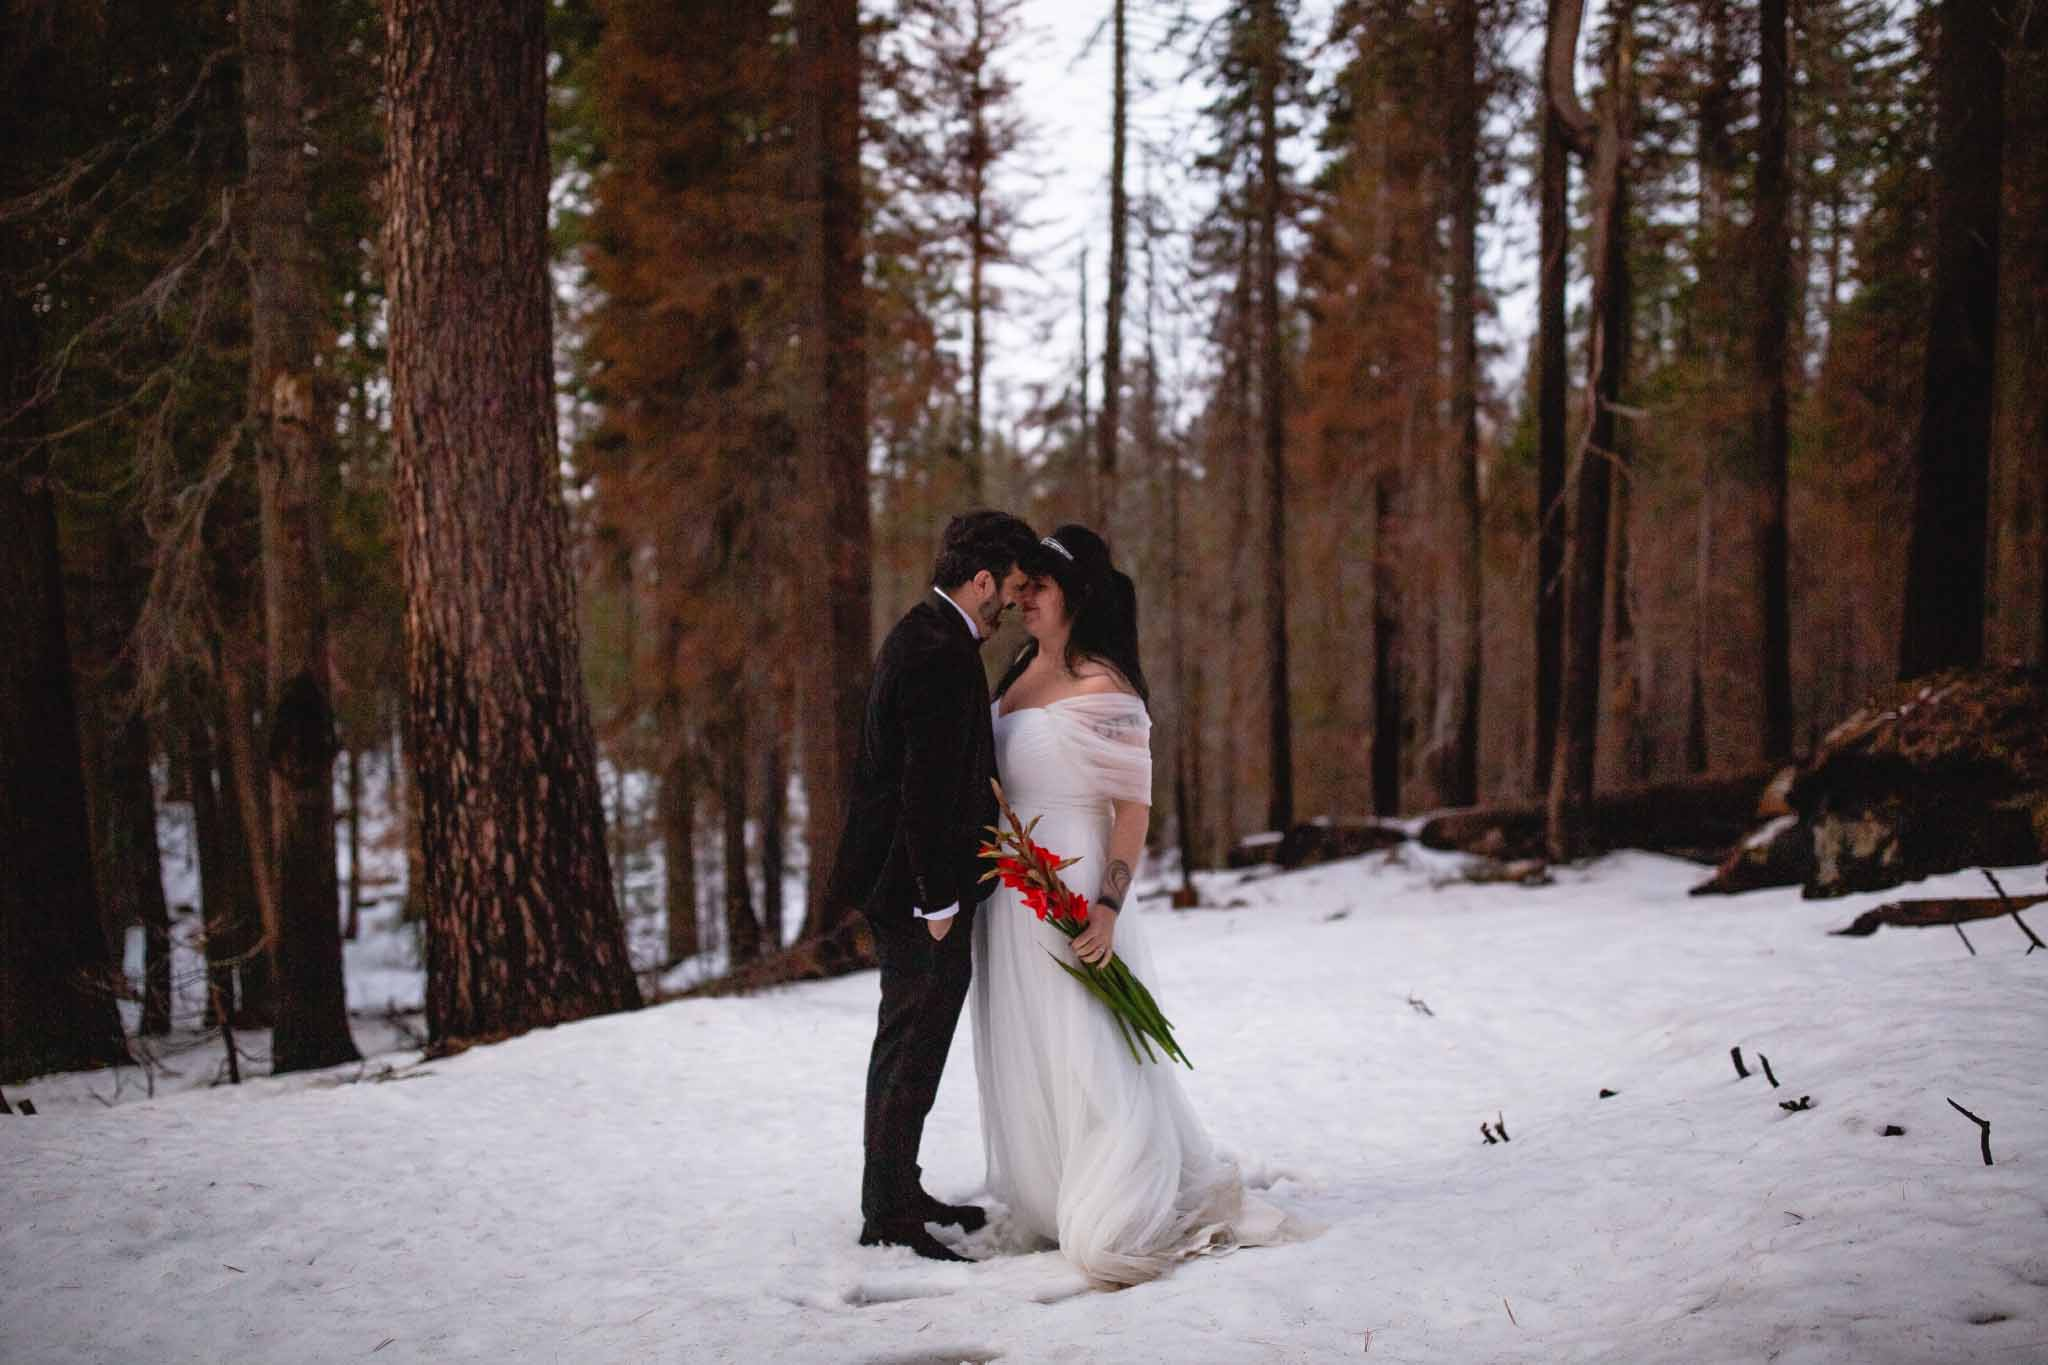 Destination Photographer, Yosemite National Park,Wedding, Pictures, Photos, Rocker in love, Ana Corsmeier